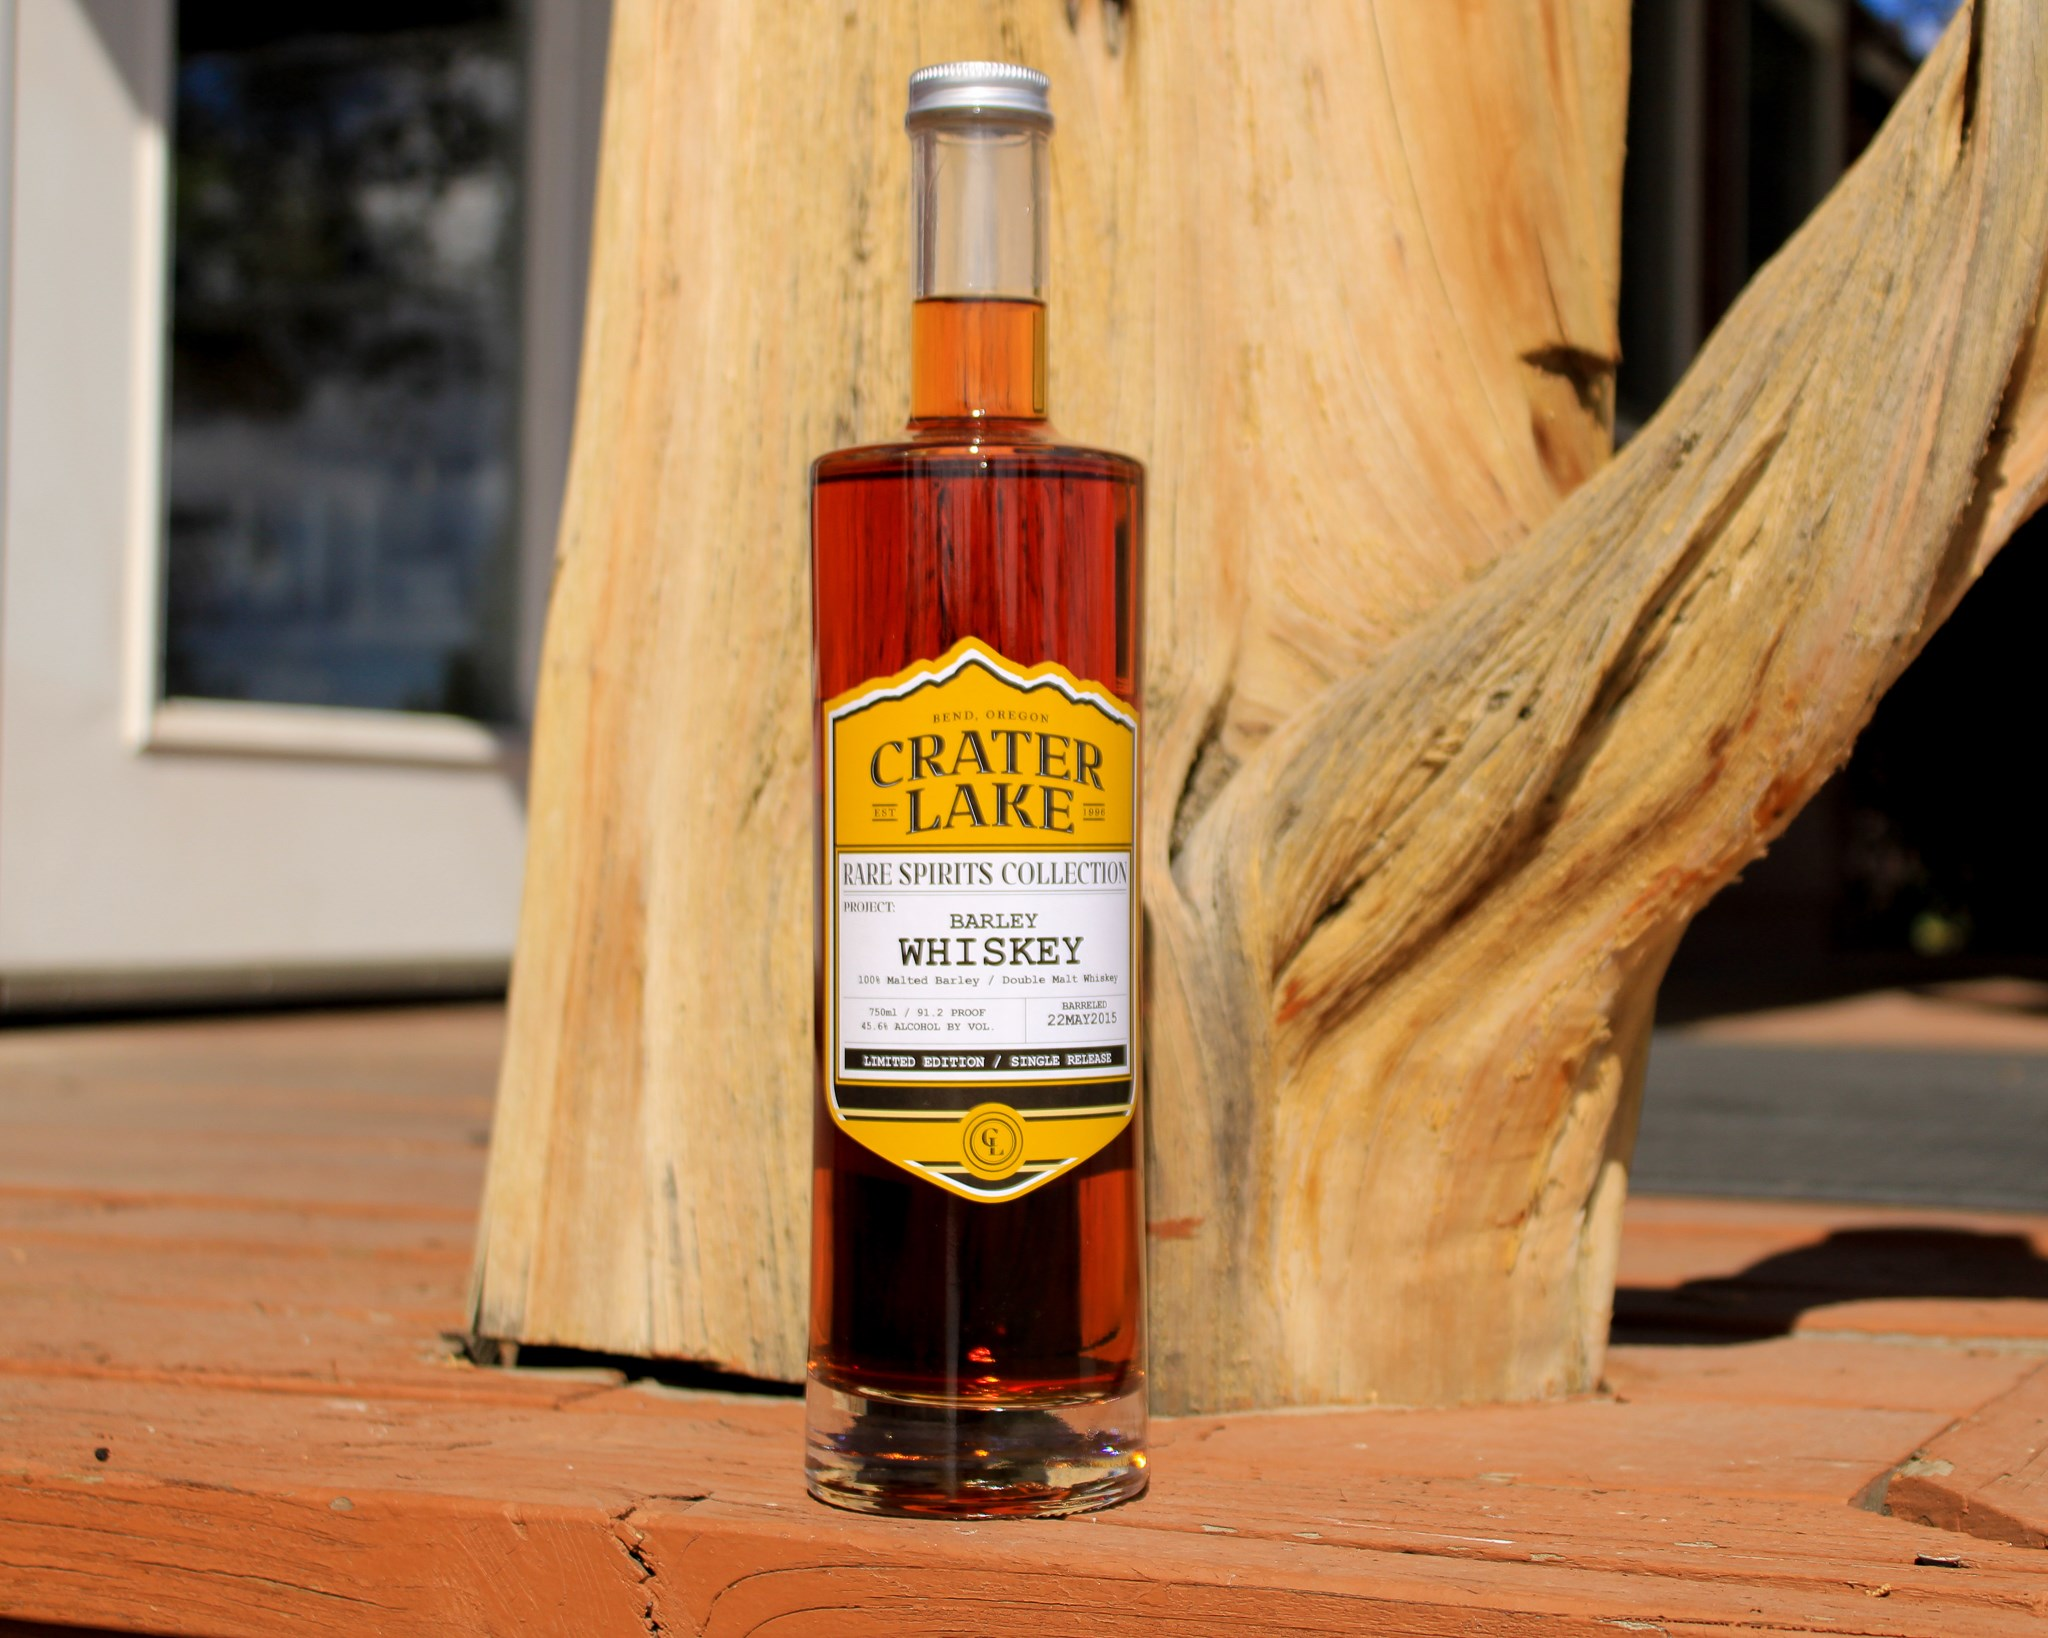 Crater Lake Rare Spirits Collection Barley Whiskey